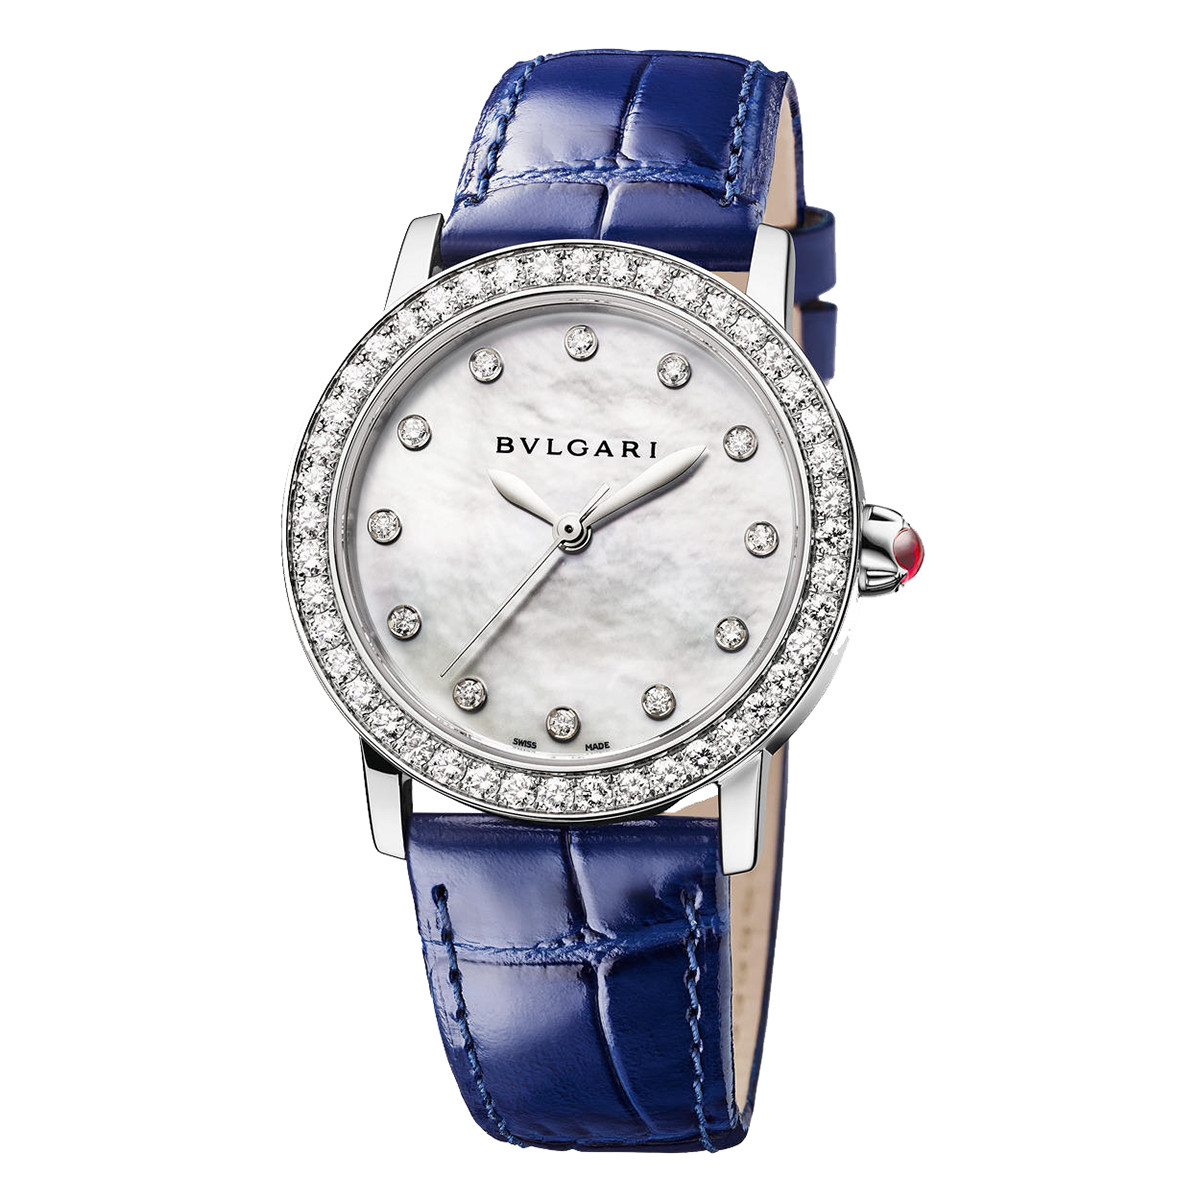 Bvlgari-Bvlgari 33mm Steel & Diamonds (102721)